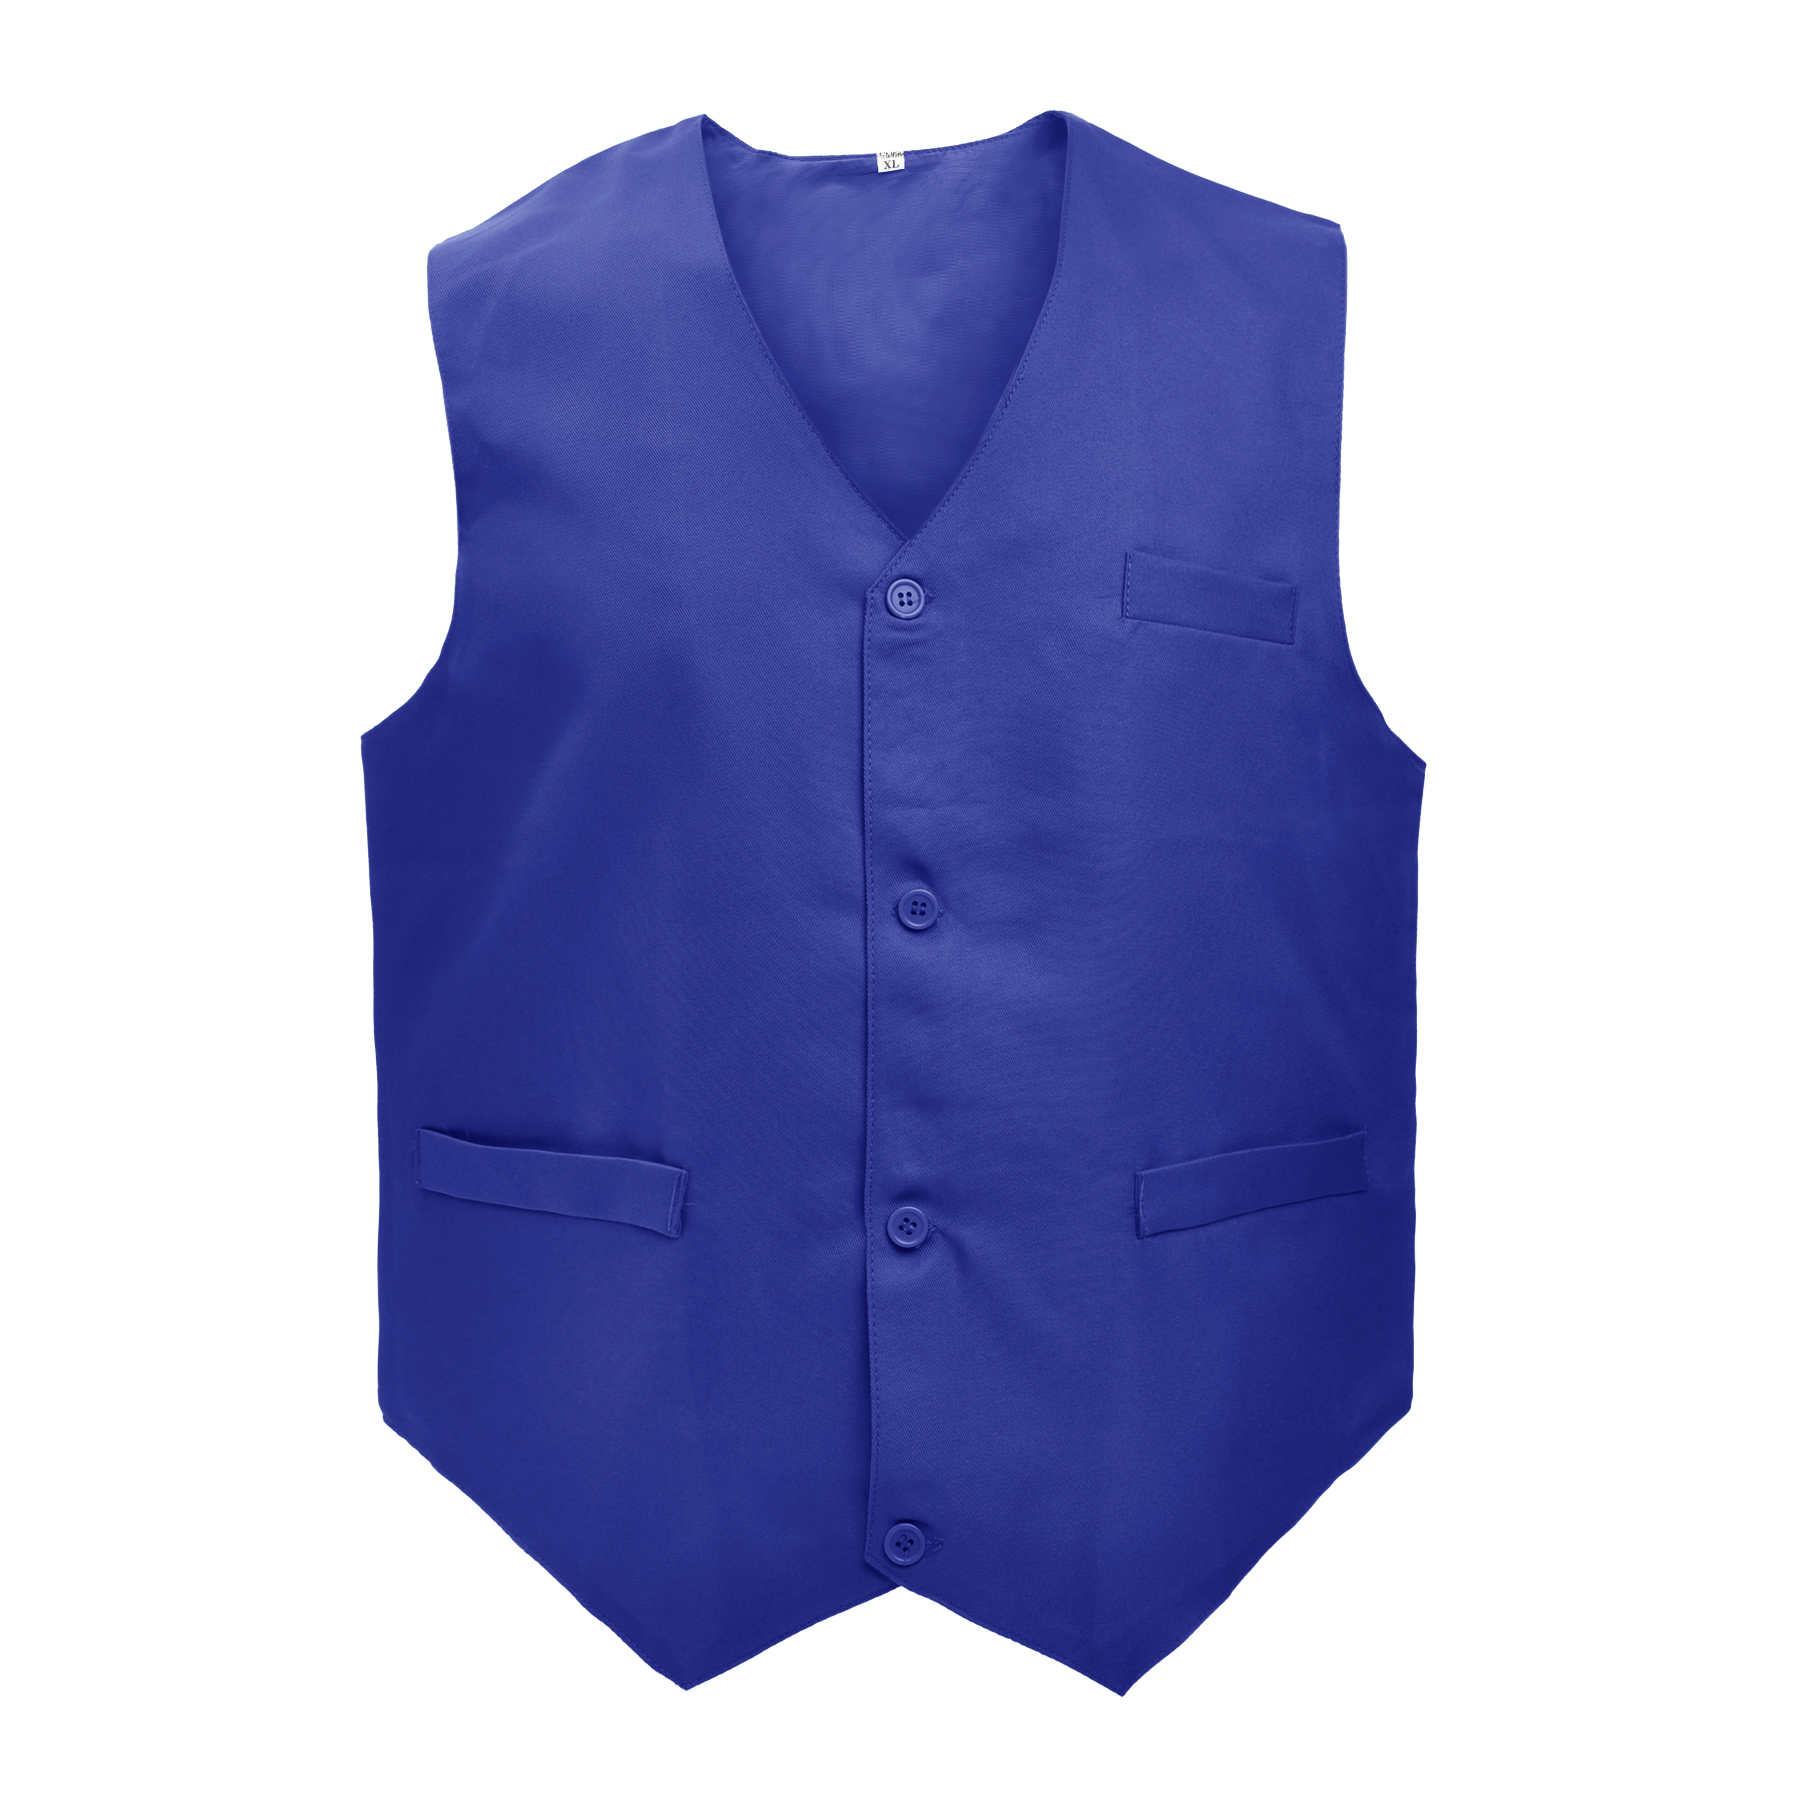 TopTie - TopTie Waiter Uniform Unisex Vest For Supermarket Clerk